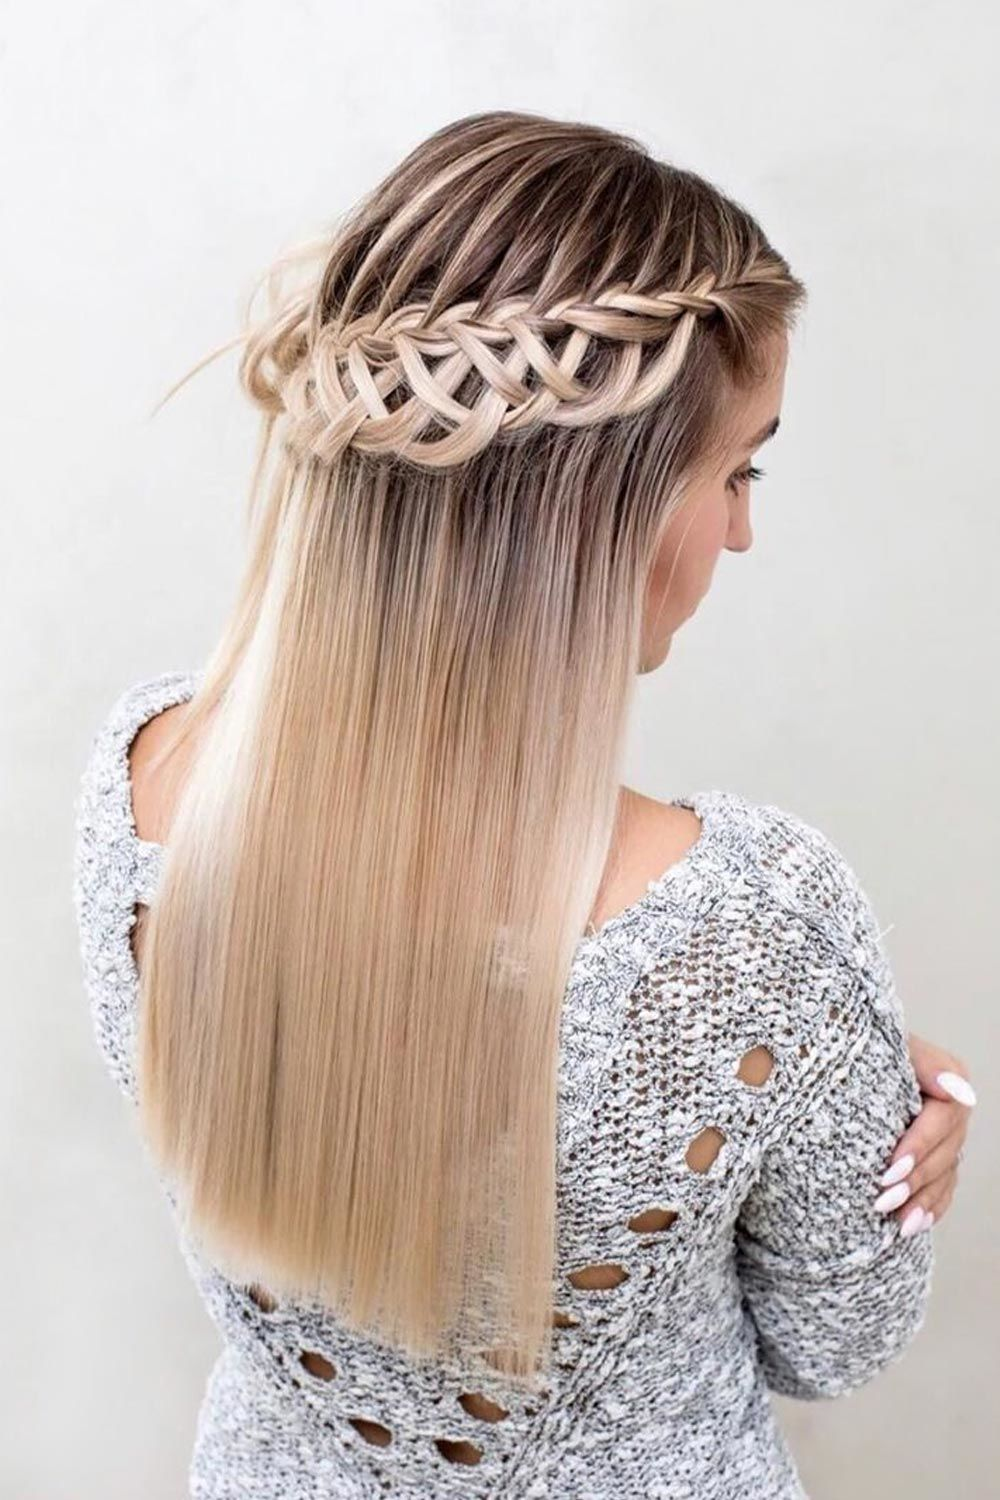 Long Blonde Hair Style With Ladder Braid